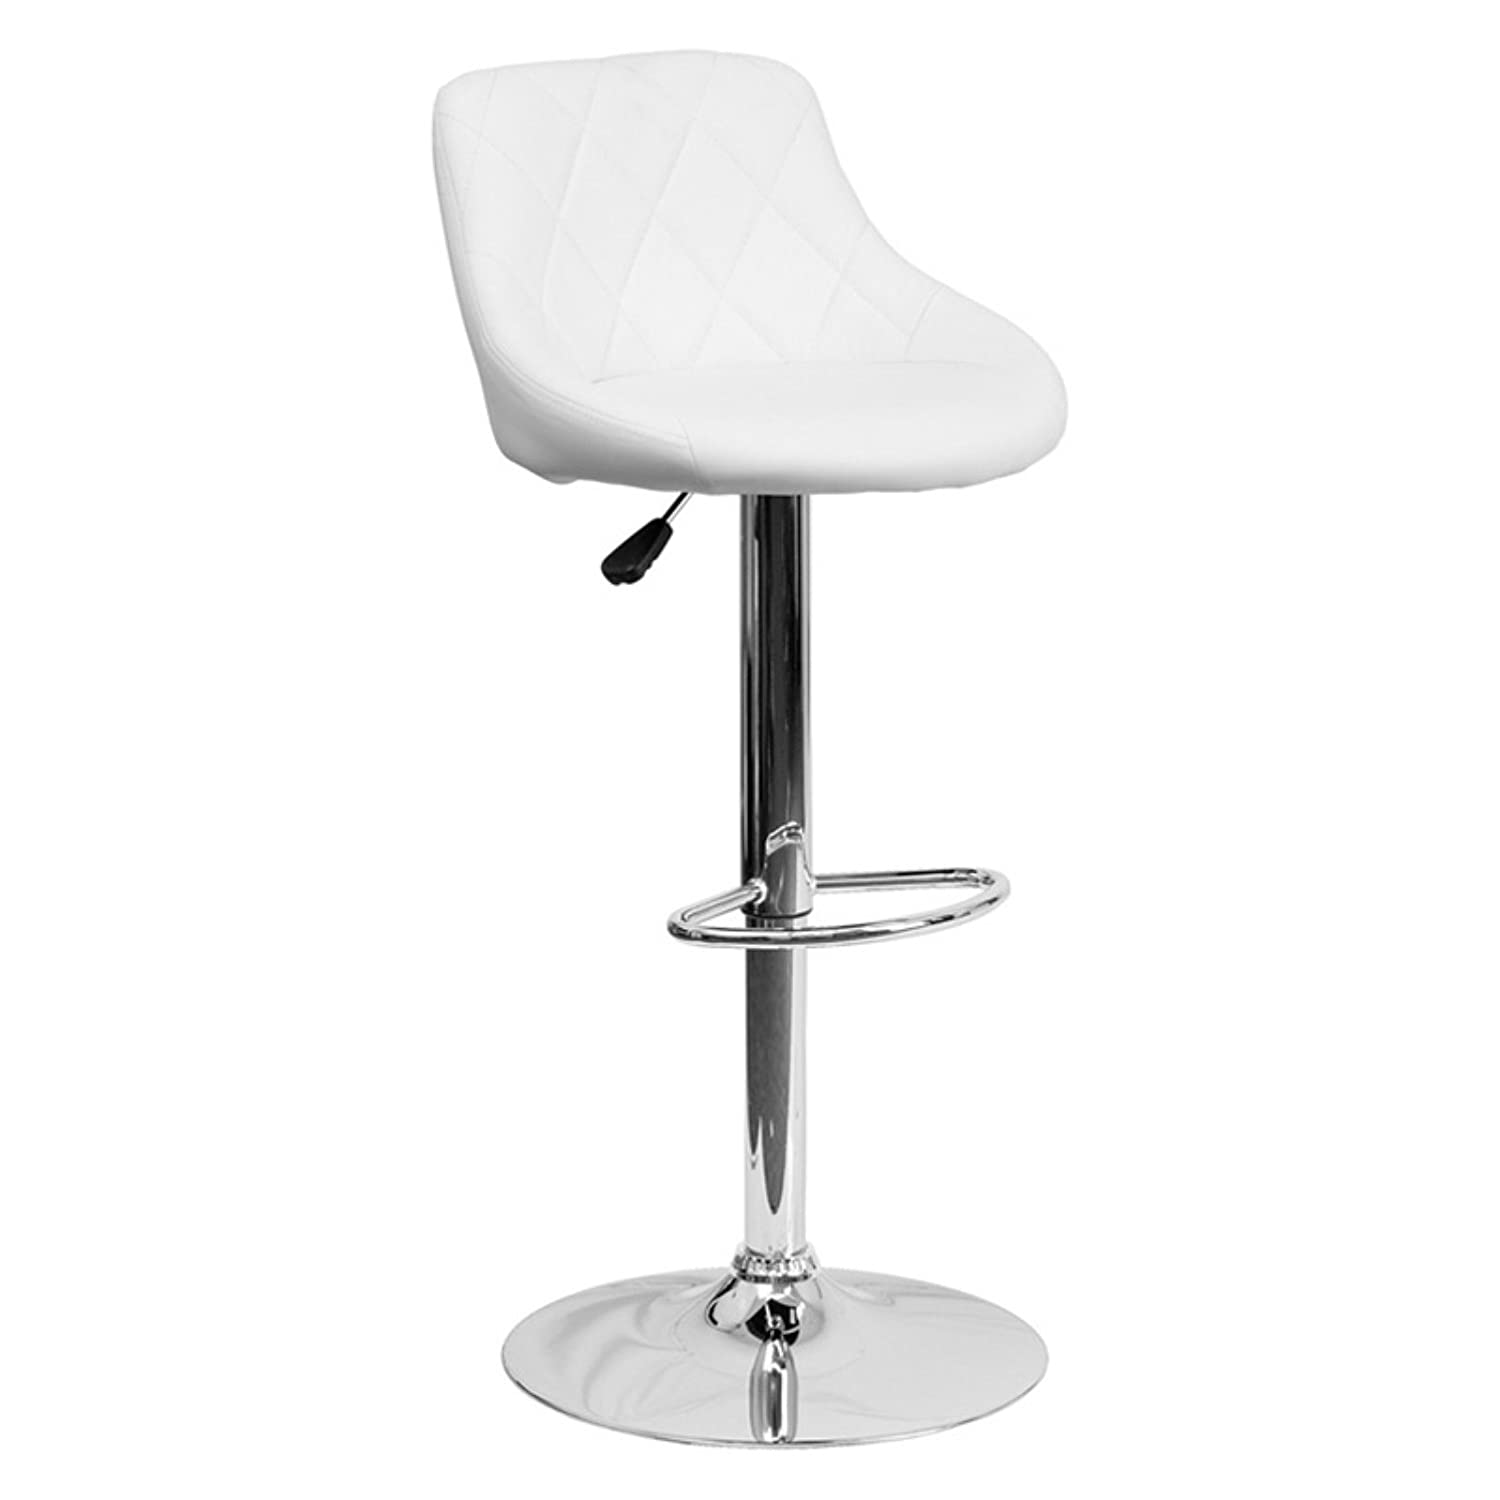 Belleze Set of 2 Modern Adjustable Bar Stool Bucket Seat Swivel and Footrest, White